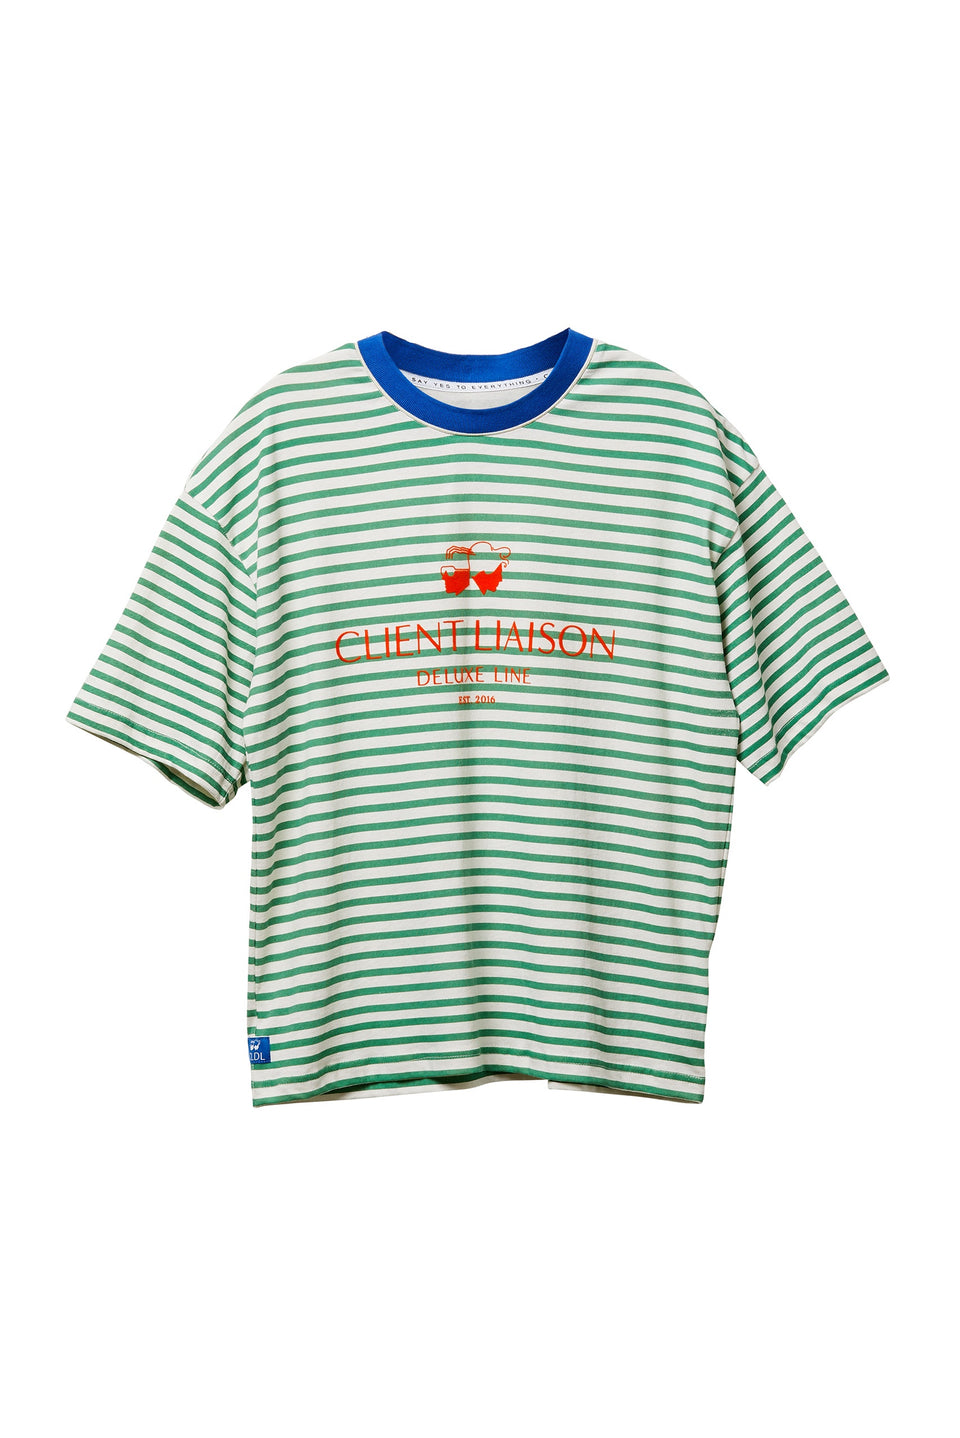 Thin Stripe CL Deluxe Classic Tee (CLDL-019 )